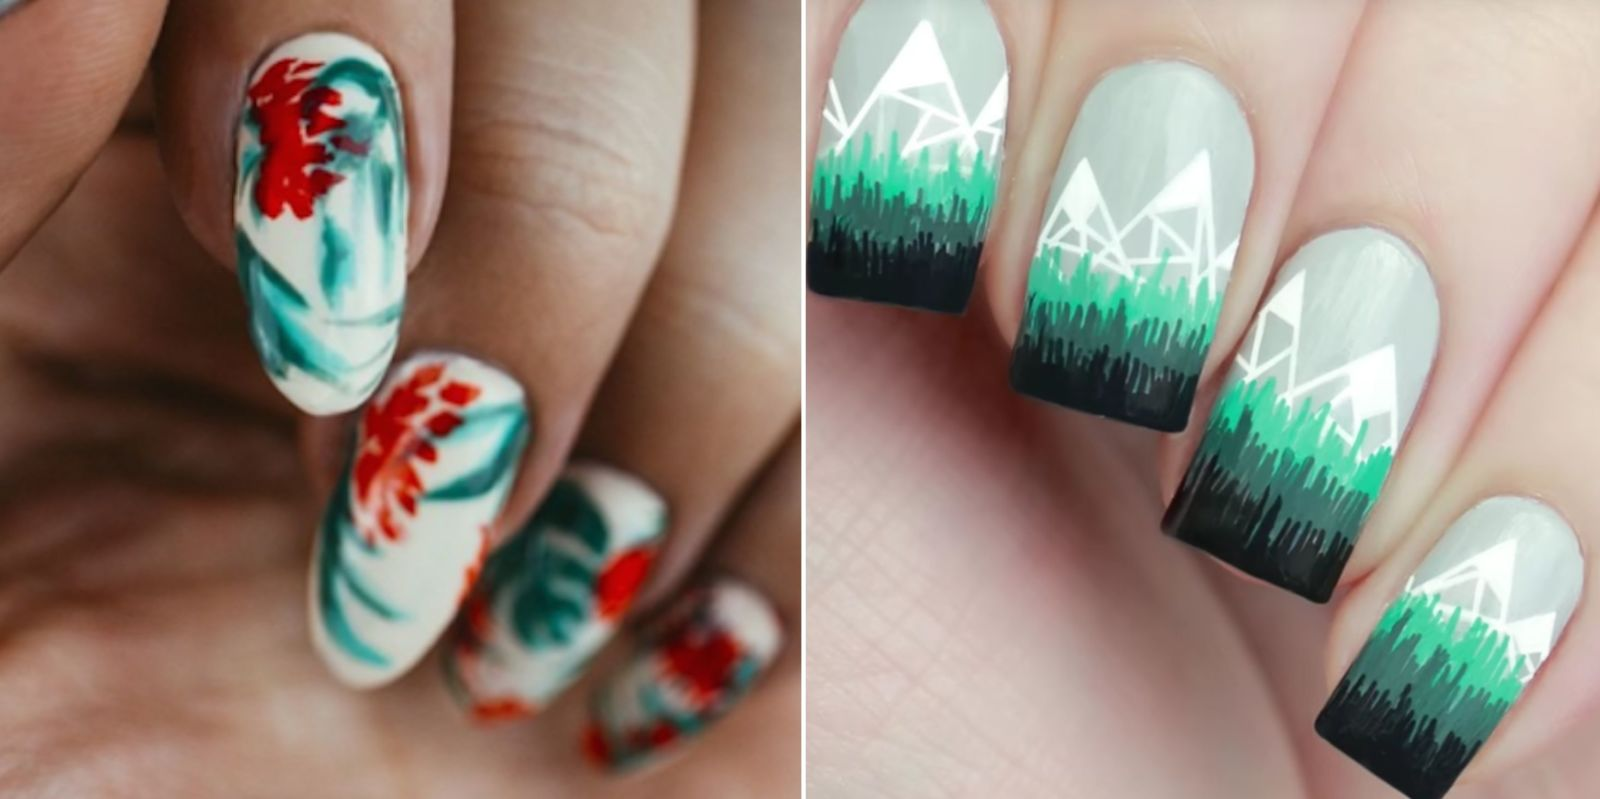 30 Festive Christmas Nail Art Ideas - Easy Designs for Holiday Nails